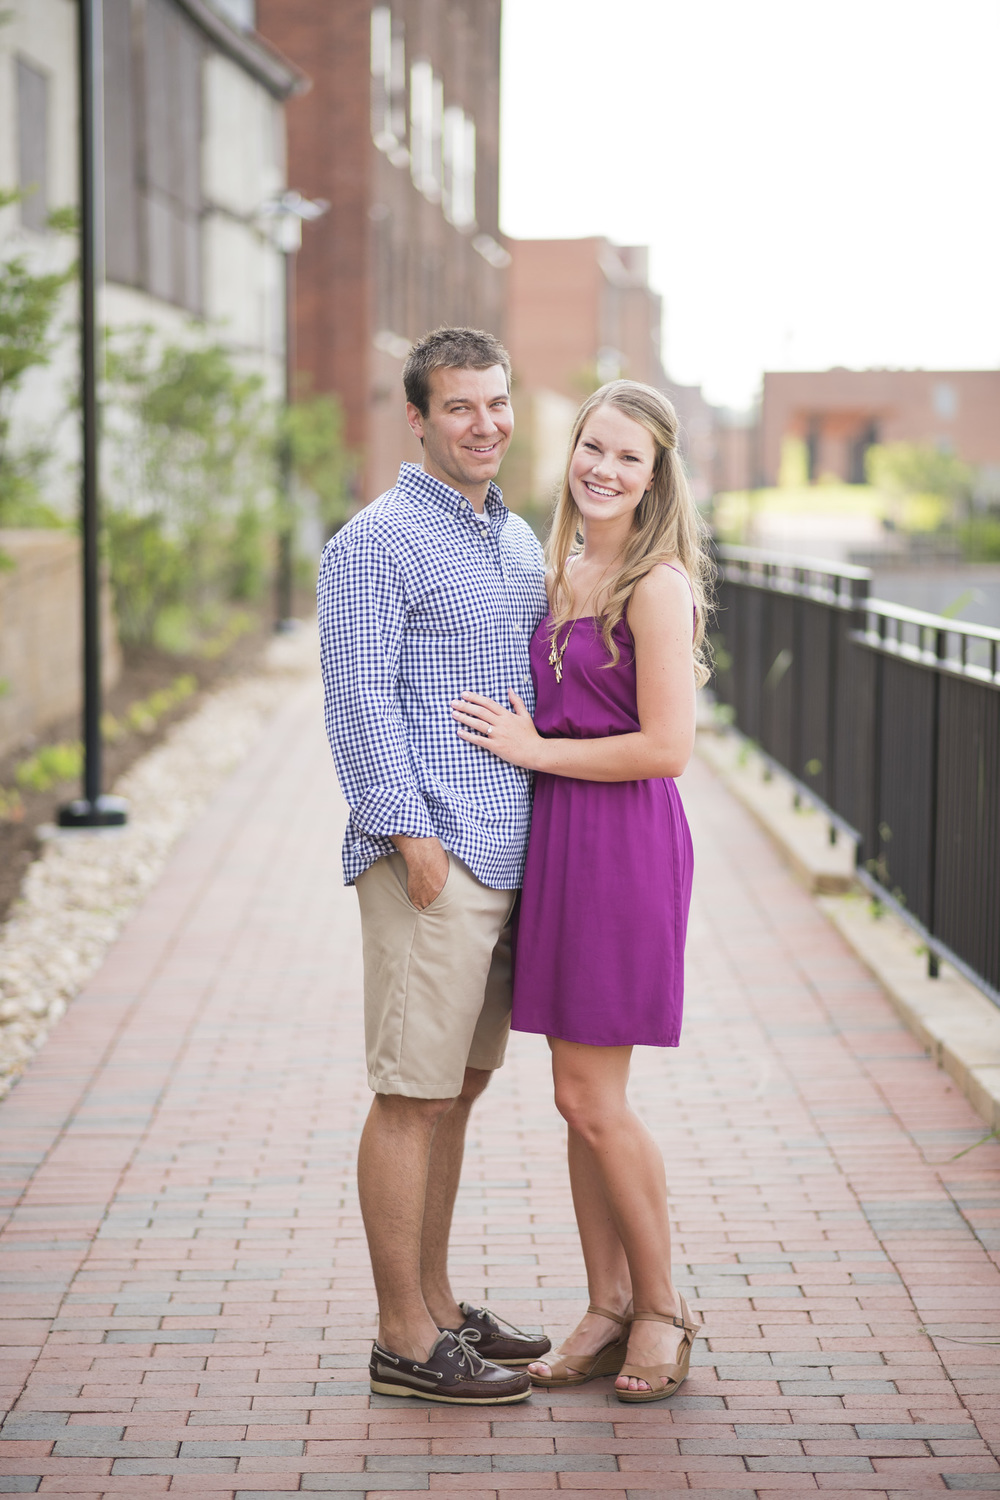 Downtown_Lynchburg_VA_craddock_Terry_Water_Fountain_Engagement_Session_Photos252.jpg